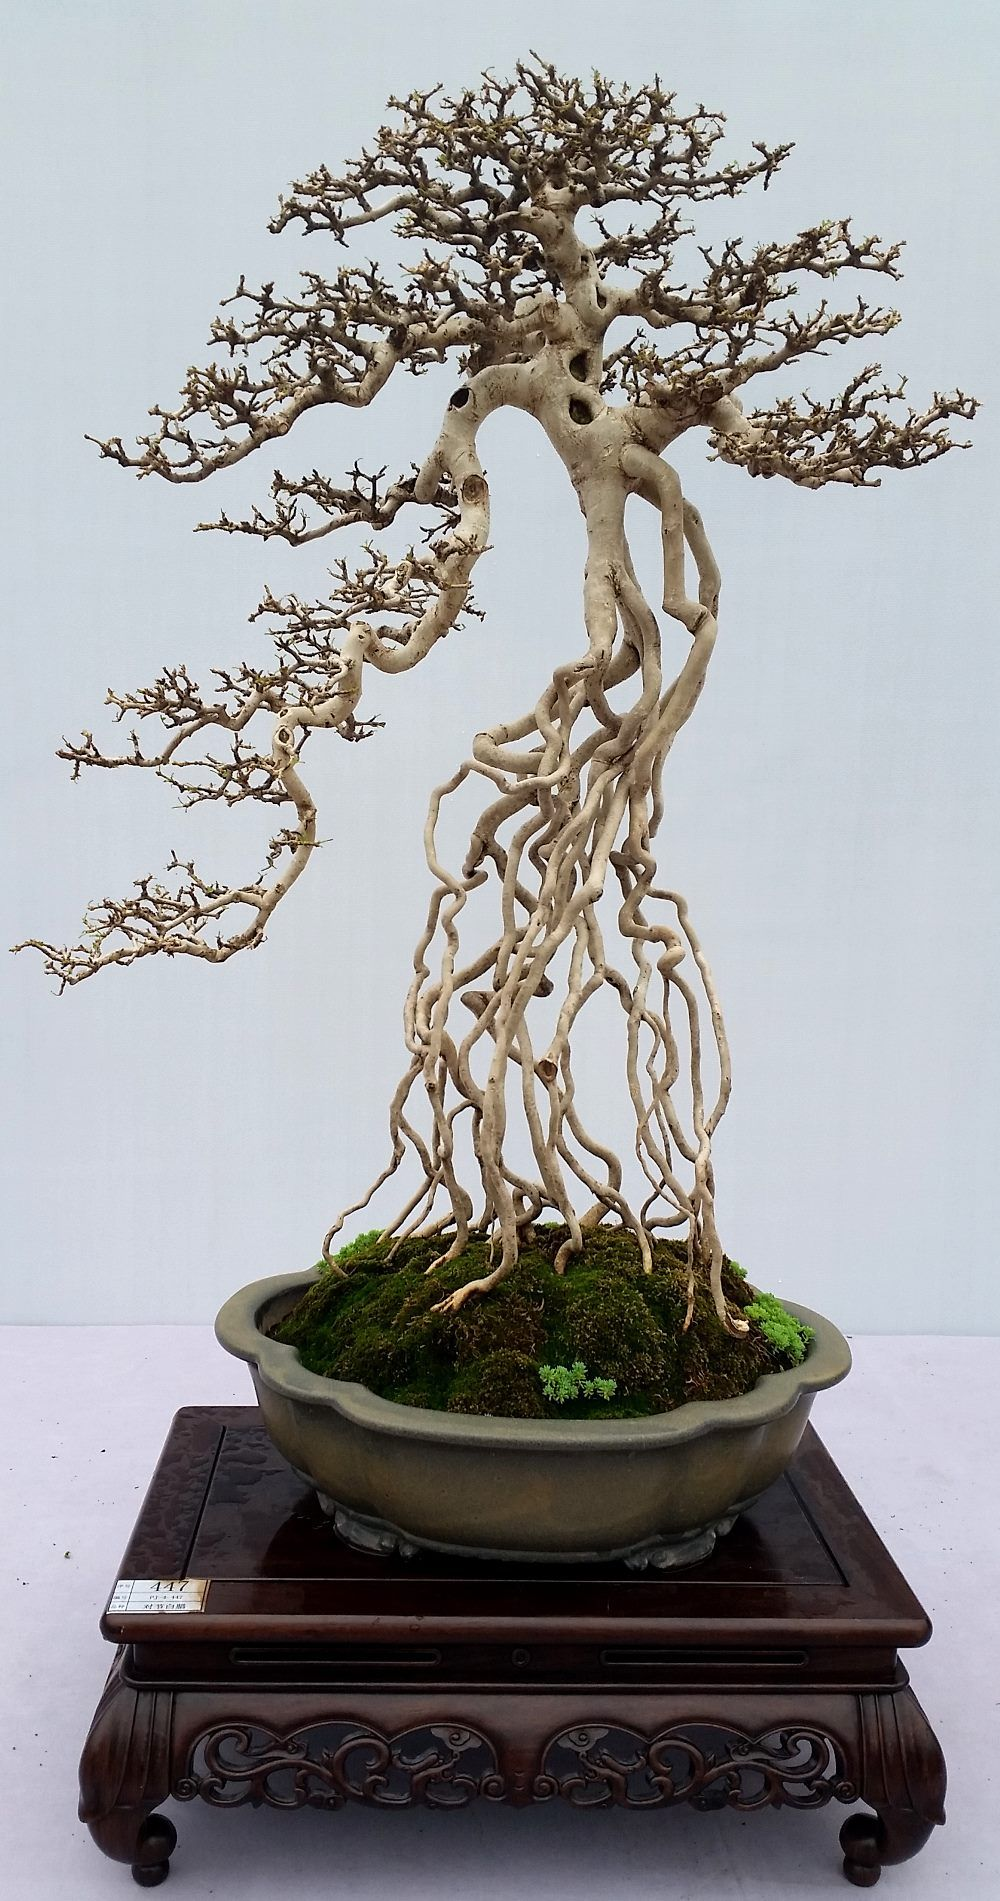 Highlights of the 9th National Bonsai Exhibition & the 1st